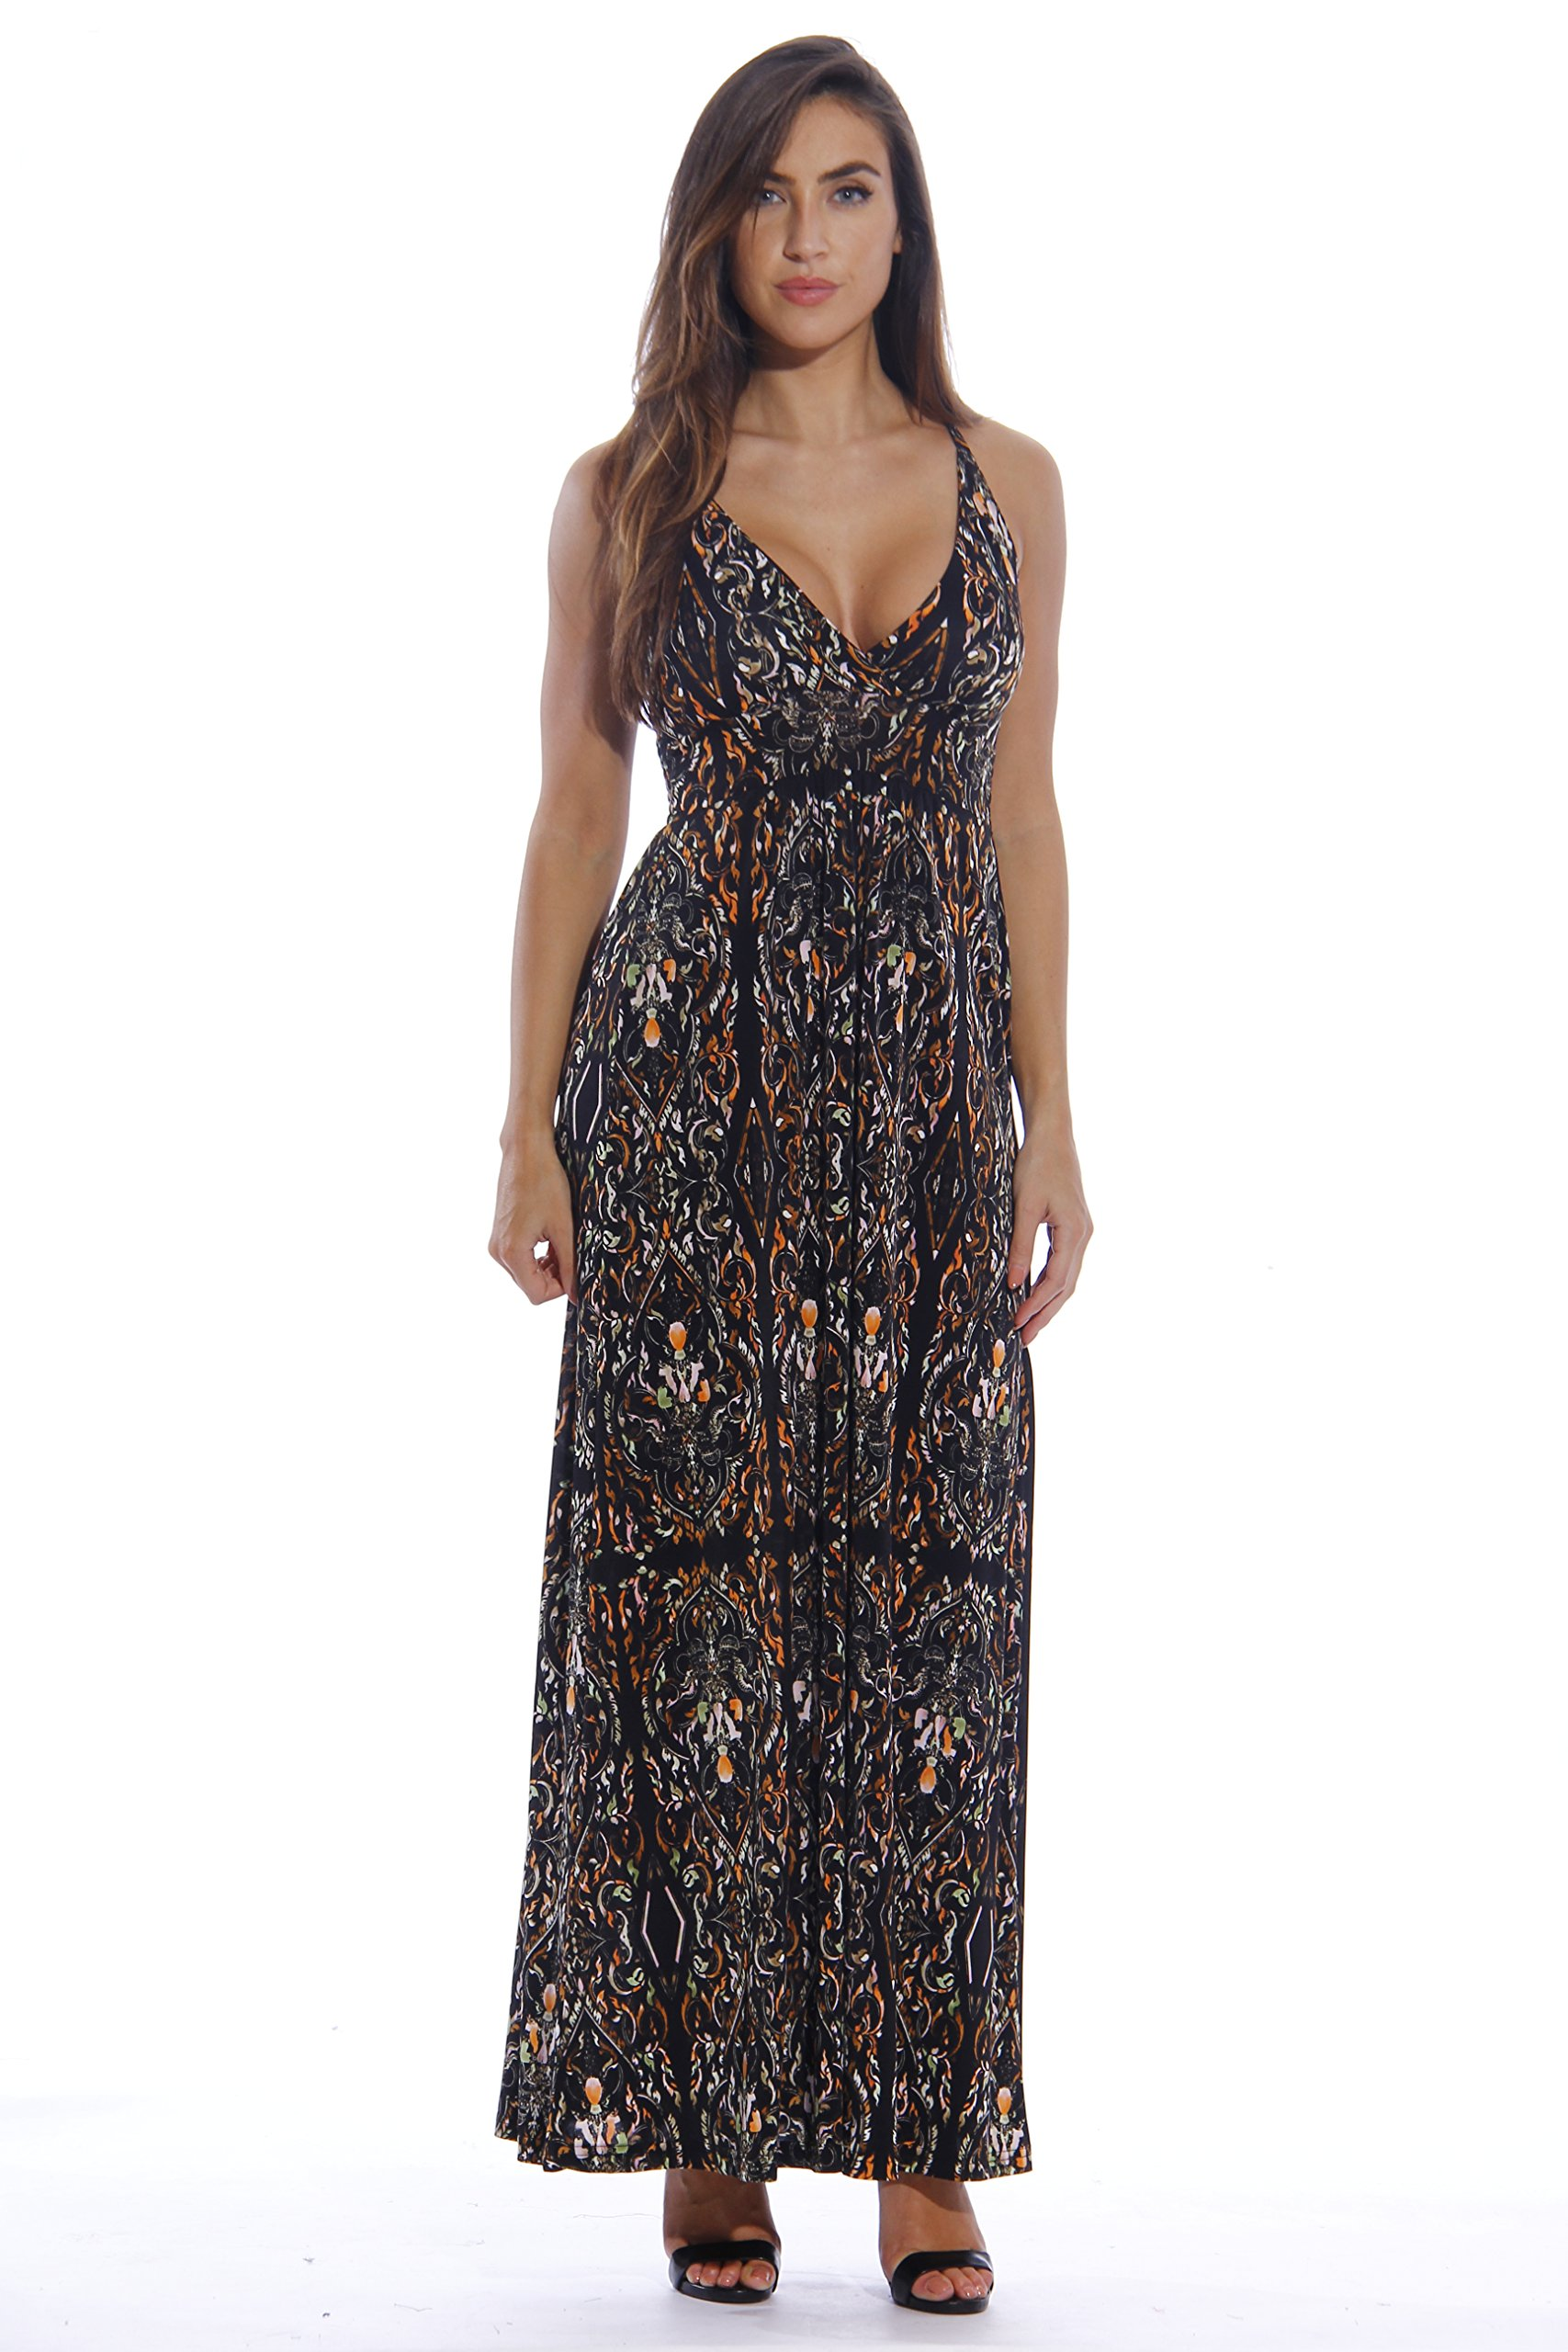 8858-54-1X Just Love Maxi Dresses for Women / Summer Plus Size Dresses,Stained Glass Window Print,1X Plus,Stained Glass Window Print,1X Plus